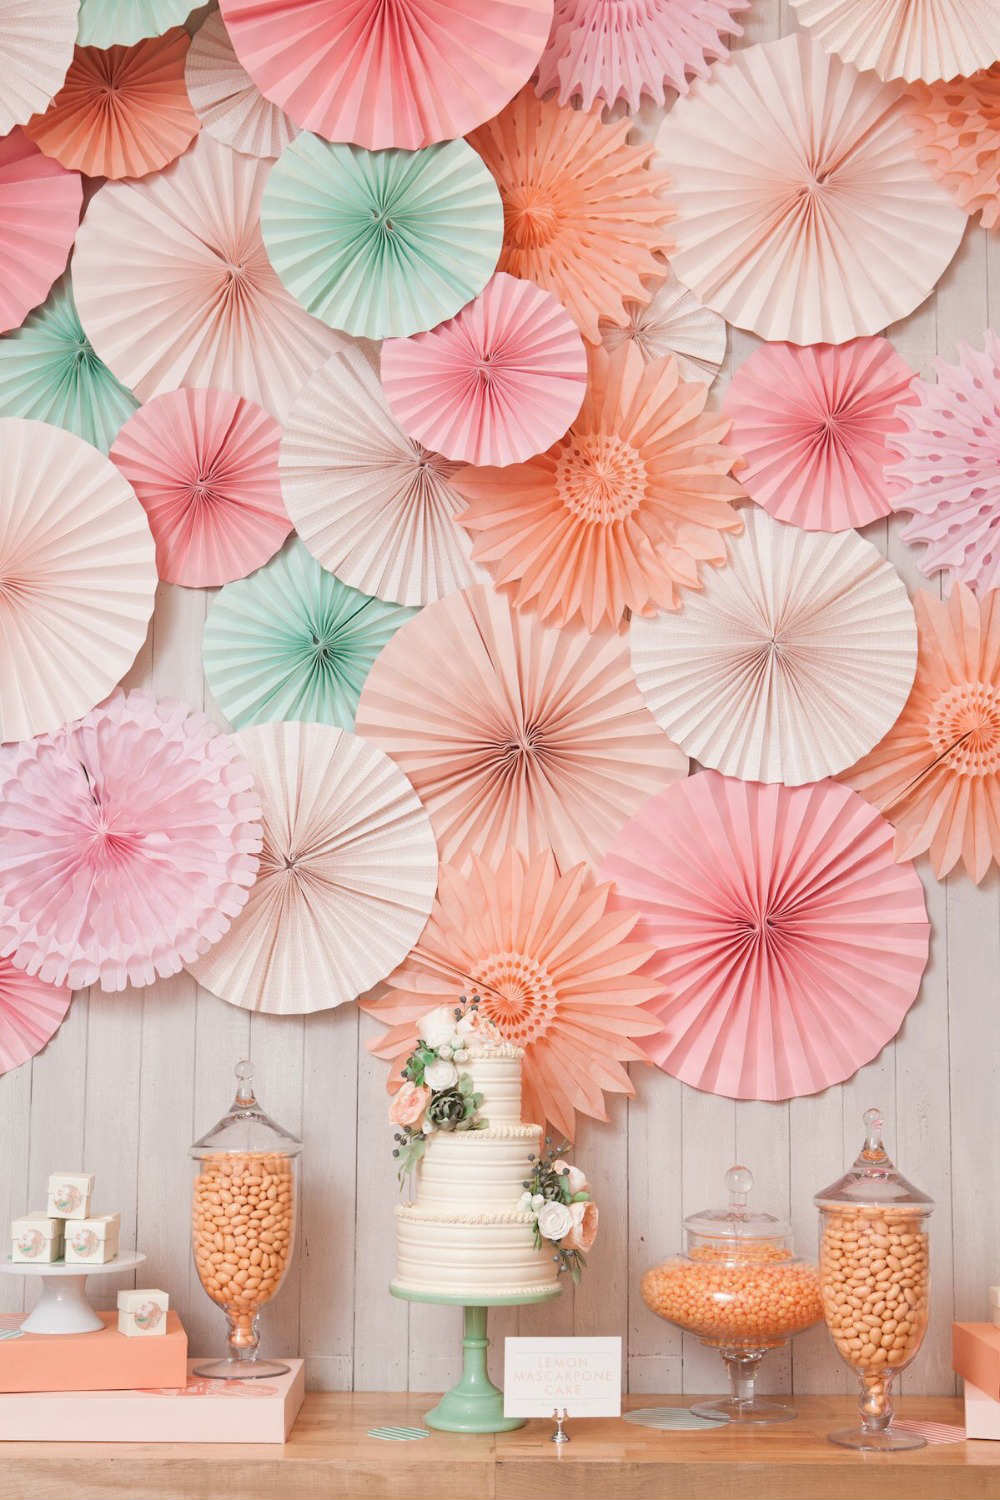 Love The Perfect Dose Of Sweetness Found In This Cake Table Backdrop